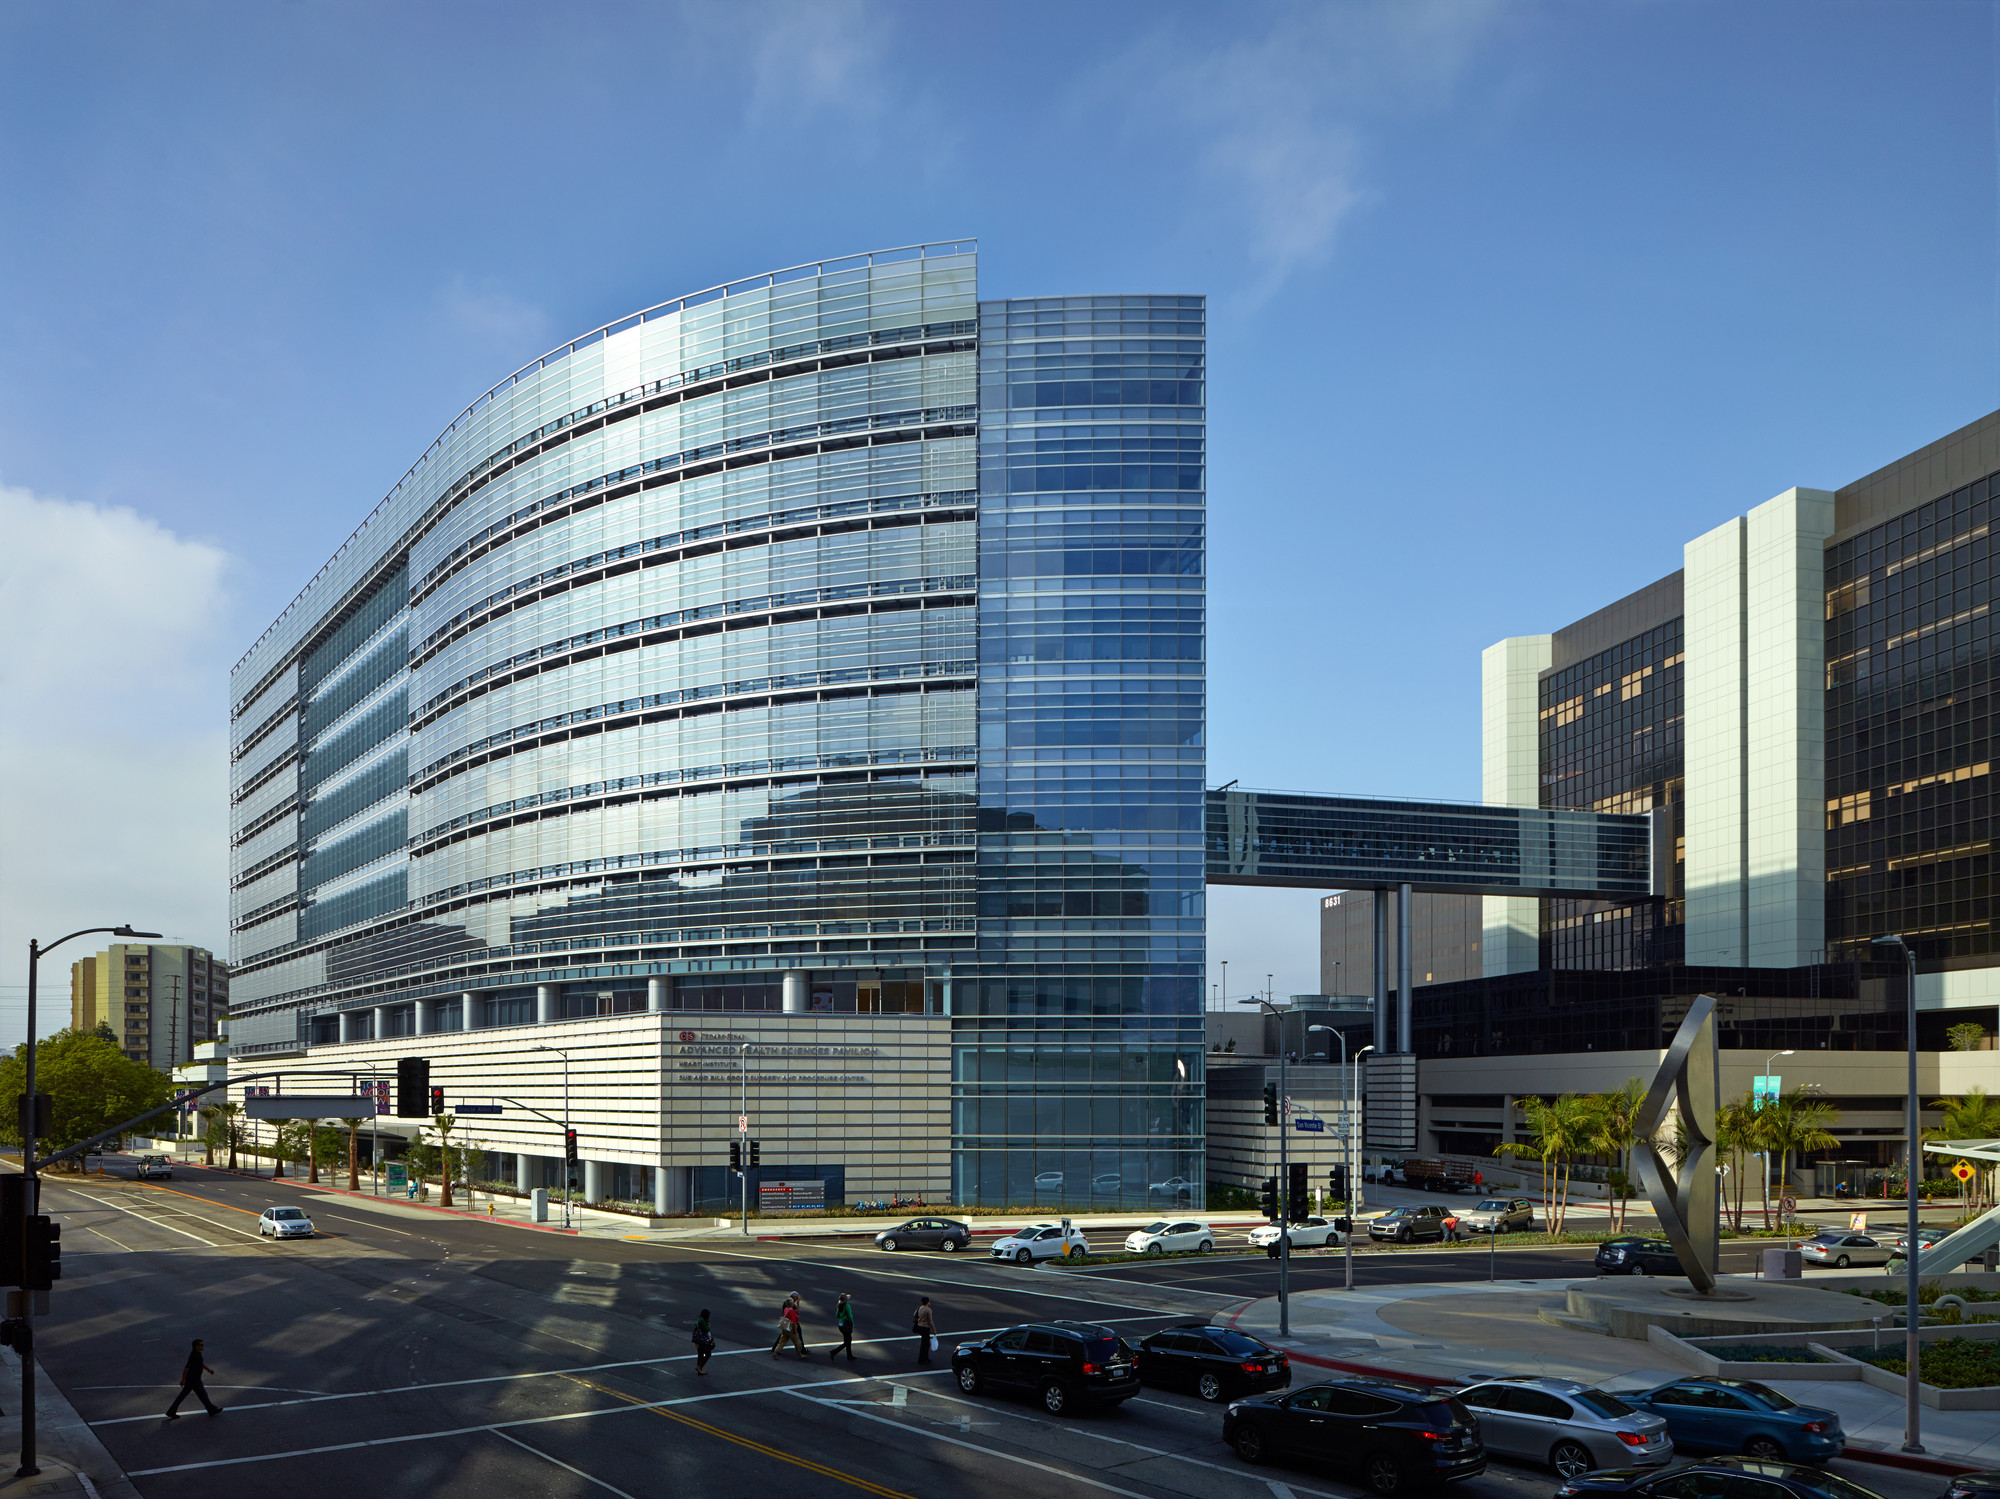 Advanced Health Sciences Pavilion, Cedars-Sinai Medical Center © John Linden